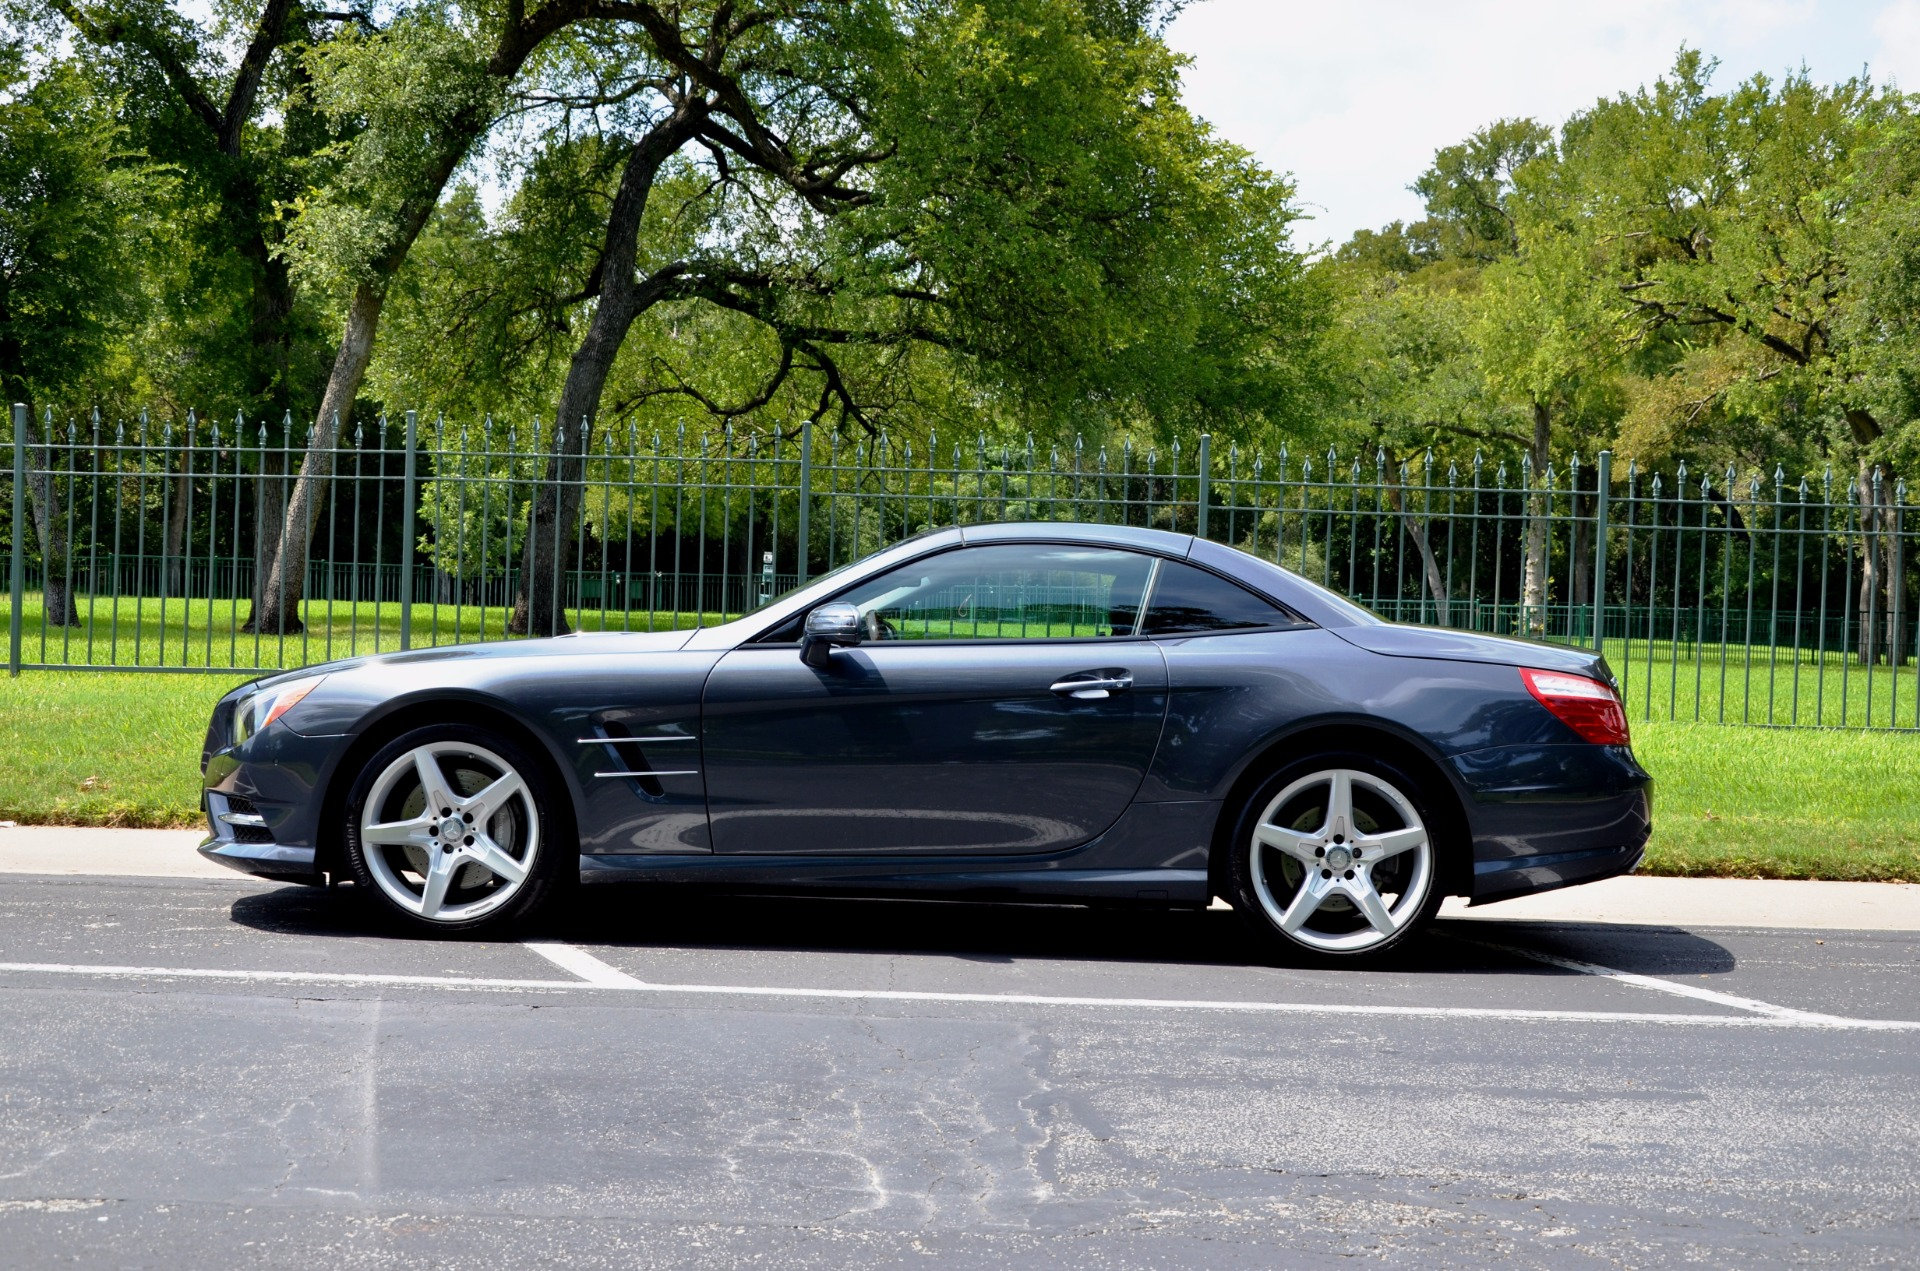 Used 2014 Mercedes-Benz SL-Class SL 550 for sale Sold at Platinum Motorcars in Dallas TX 75247 1